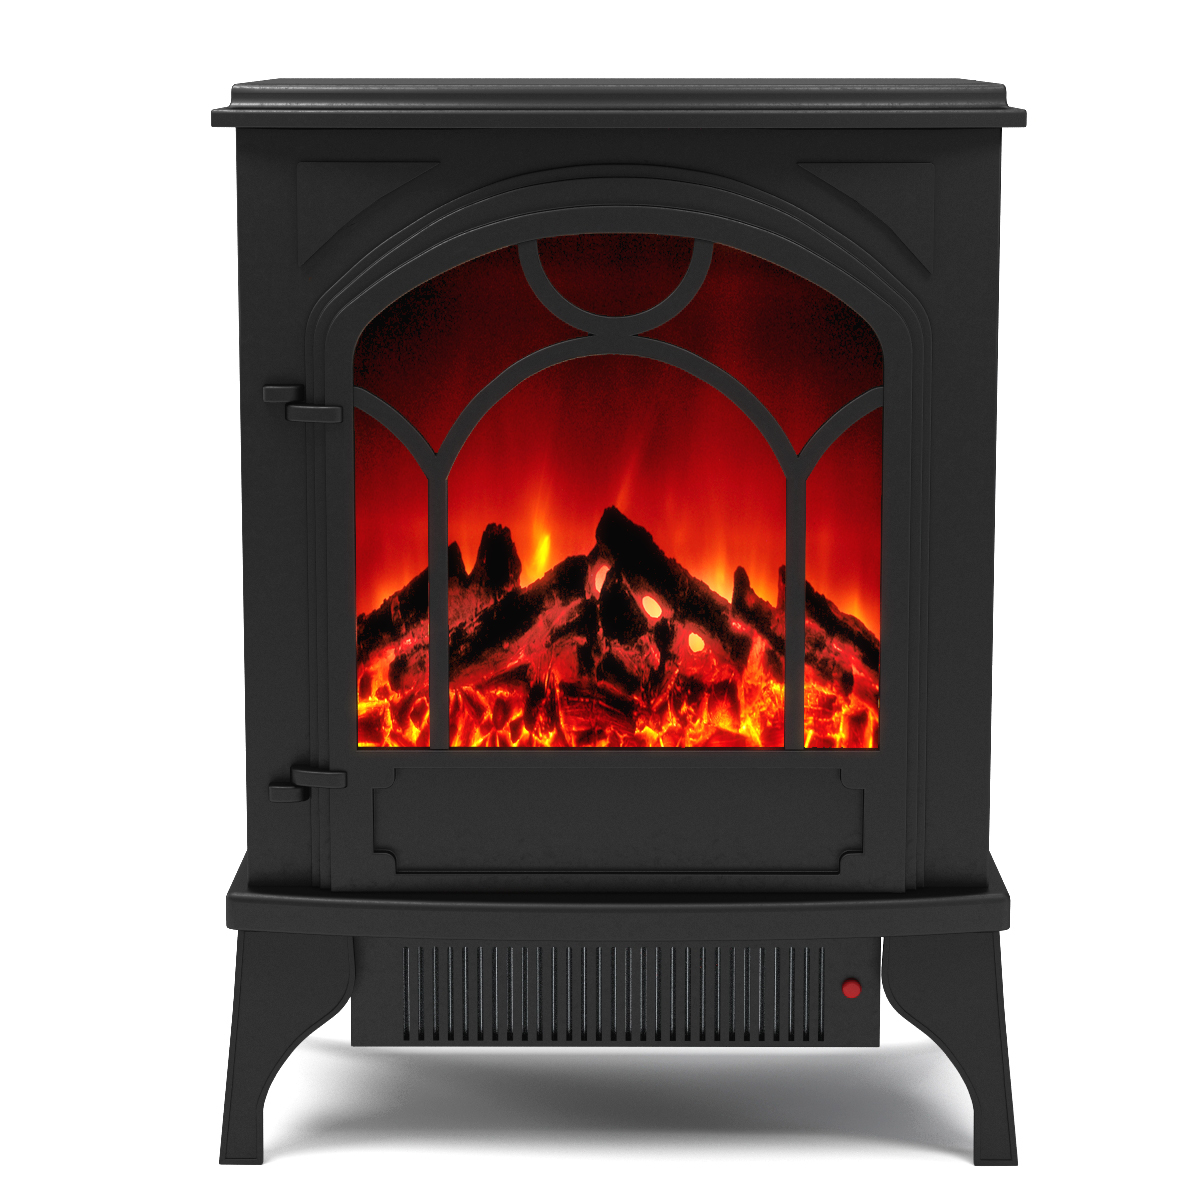 Aries electric fireplace free standing portable space Free standing fireplace